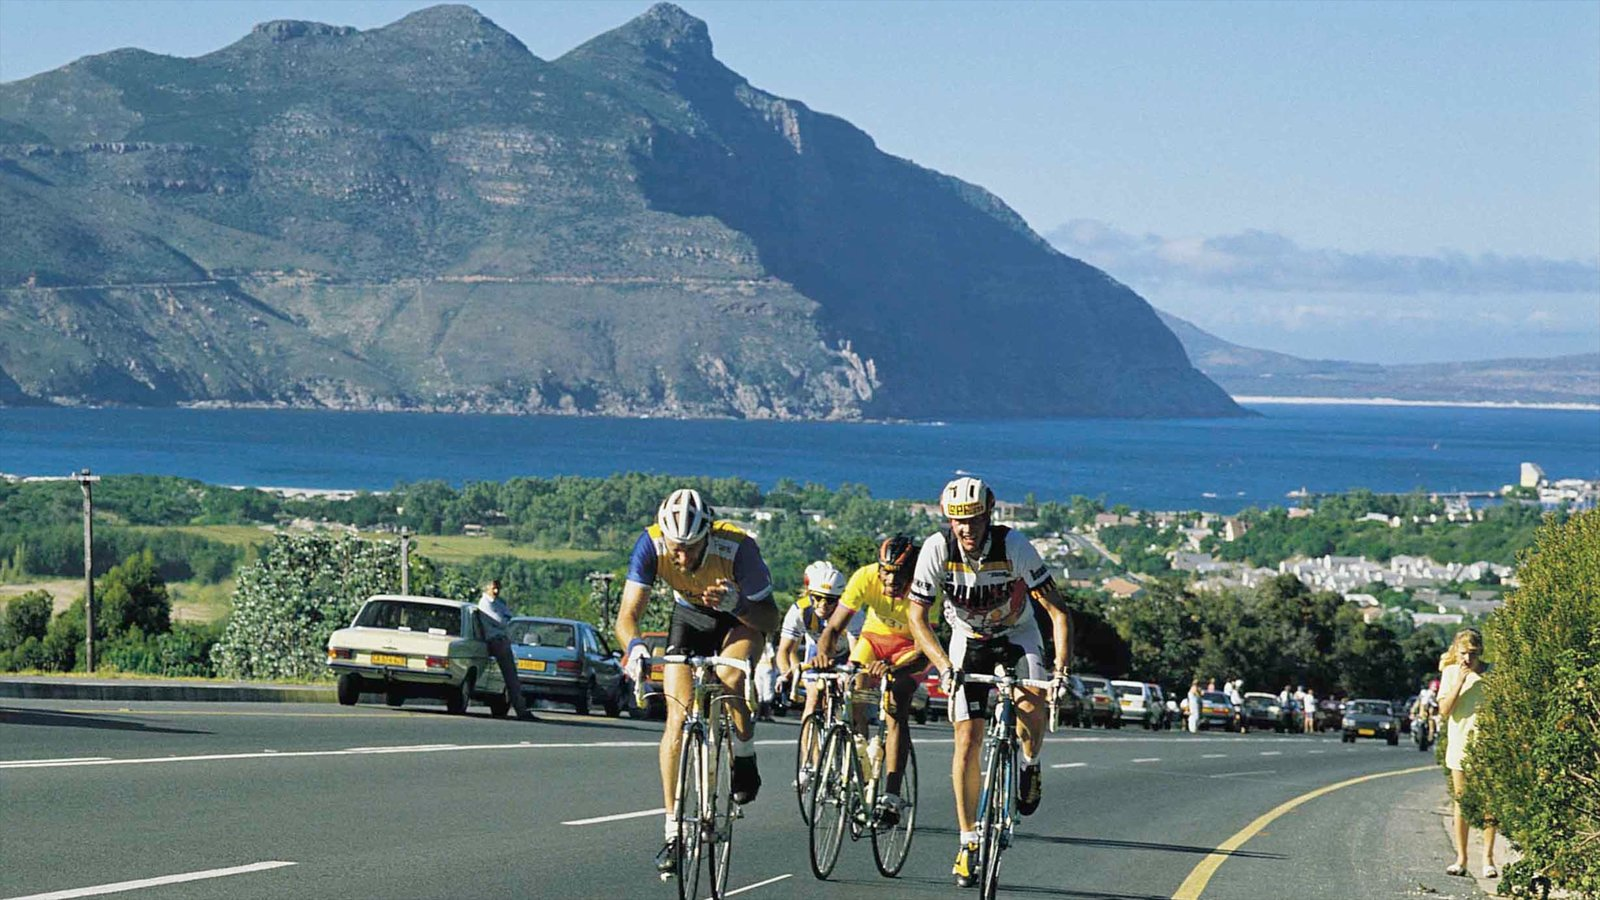 Hout Bay Beach showing a bay or harbour, general coastal views and road cycling